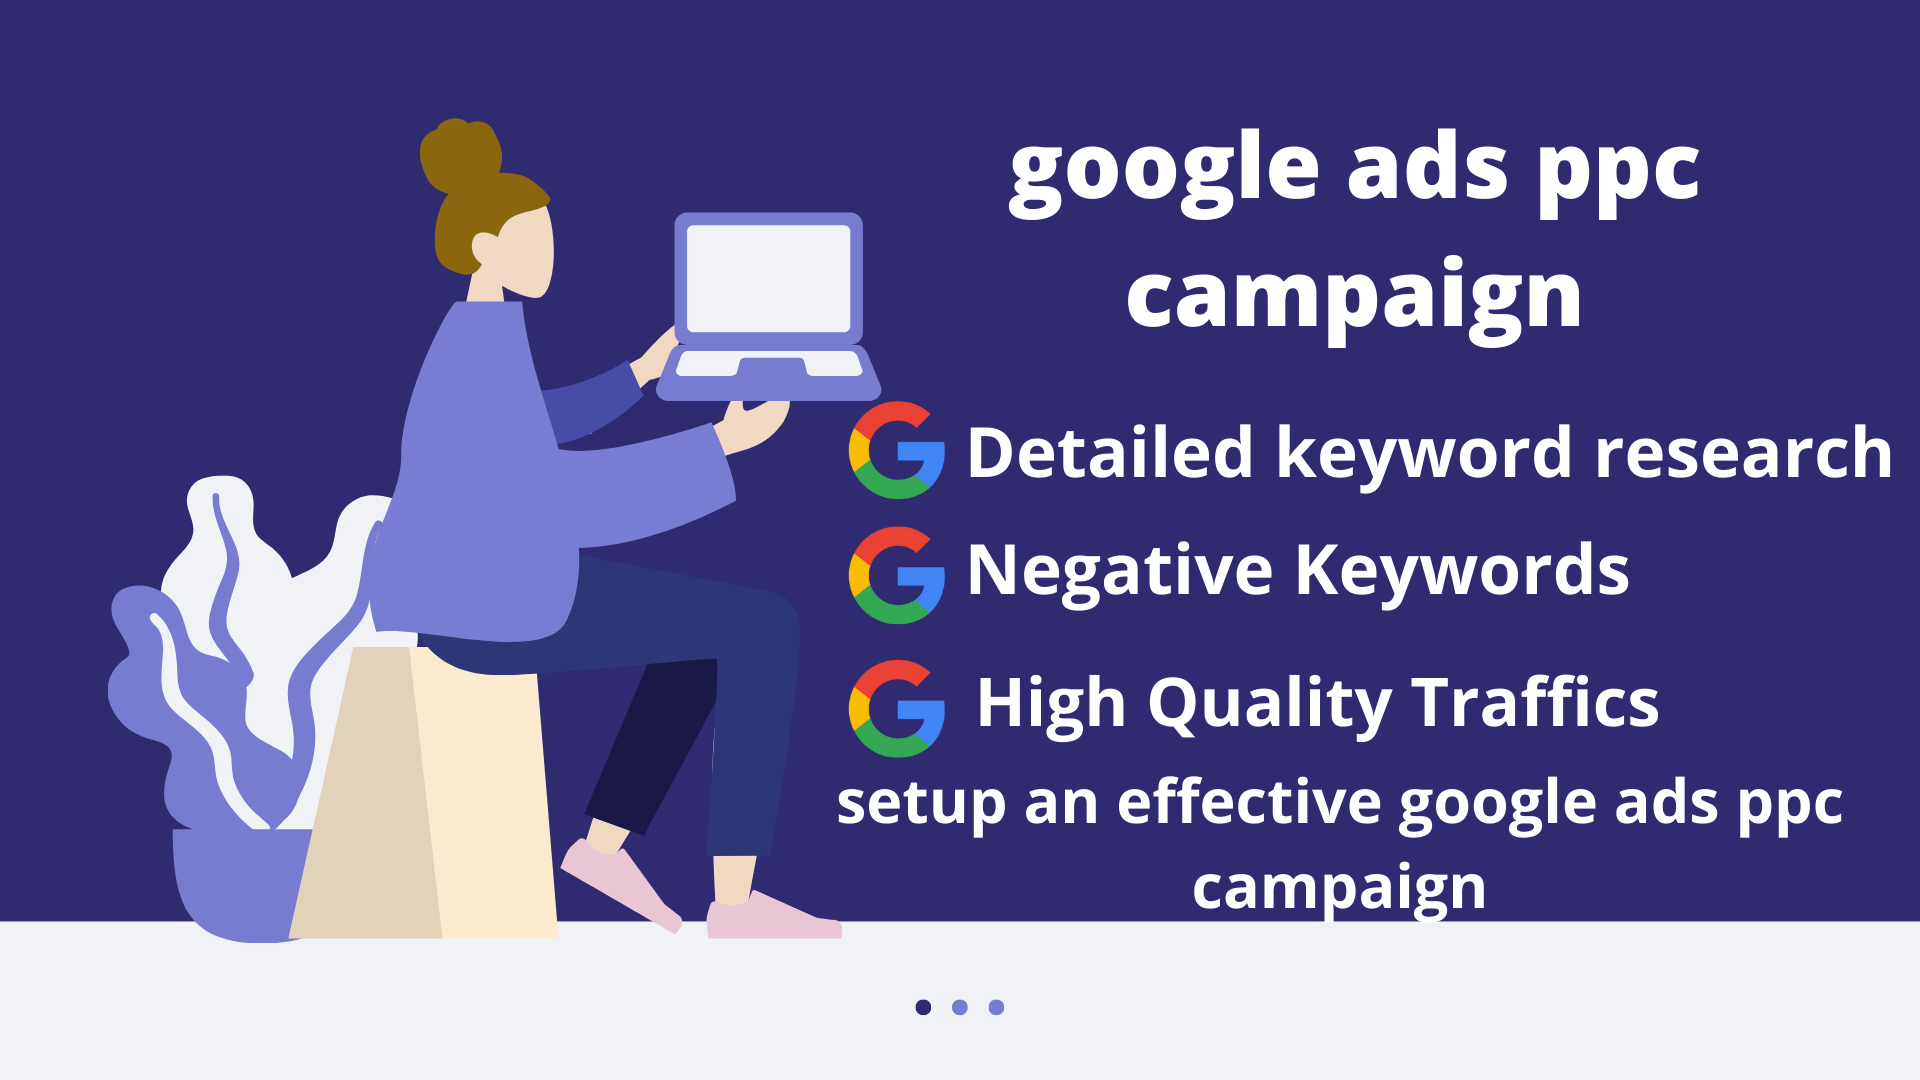 I will setup an effective google ads ppc campaign perfectly